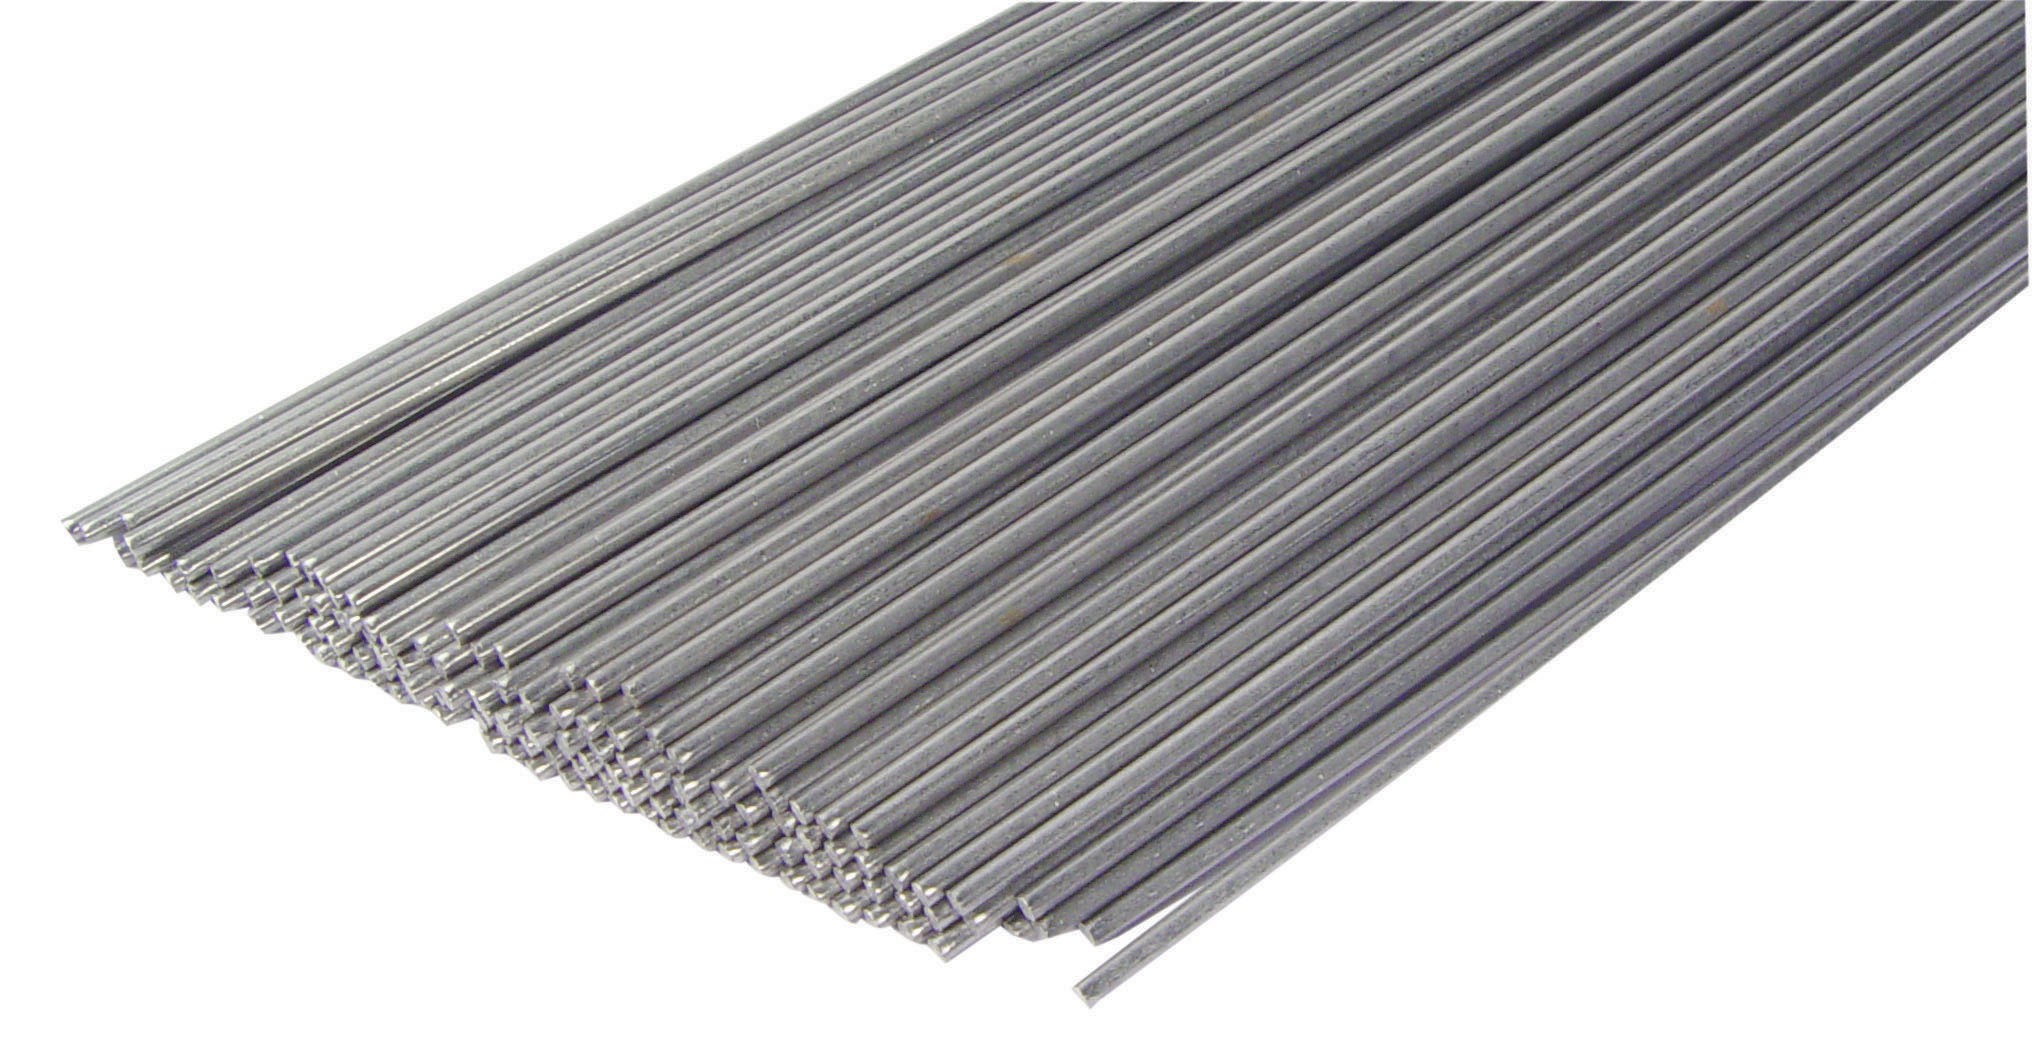 Oxford Alloys Er308/308L Stainless Steel Welding Wire, .045 Inch Dia ...